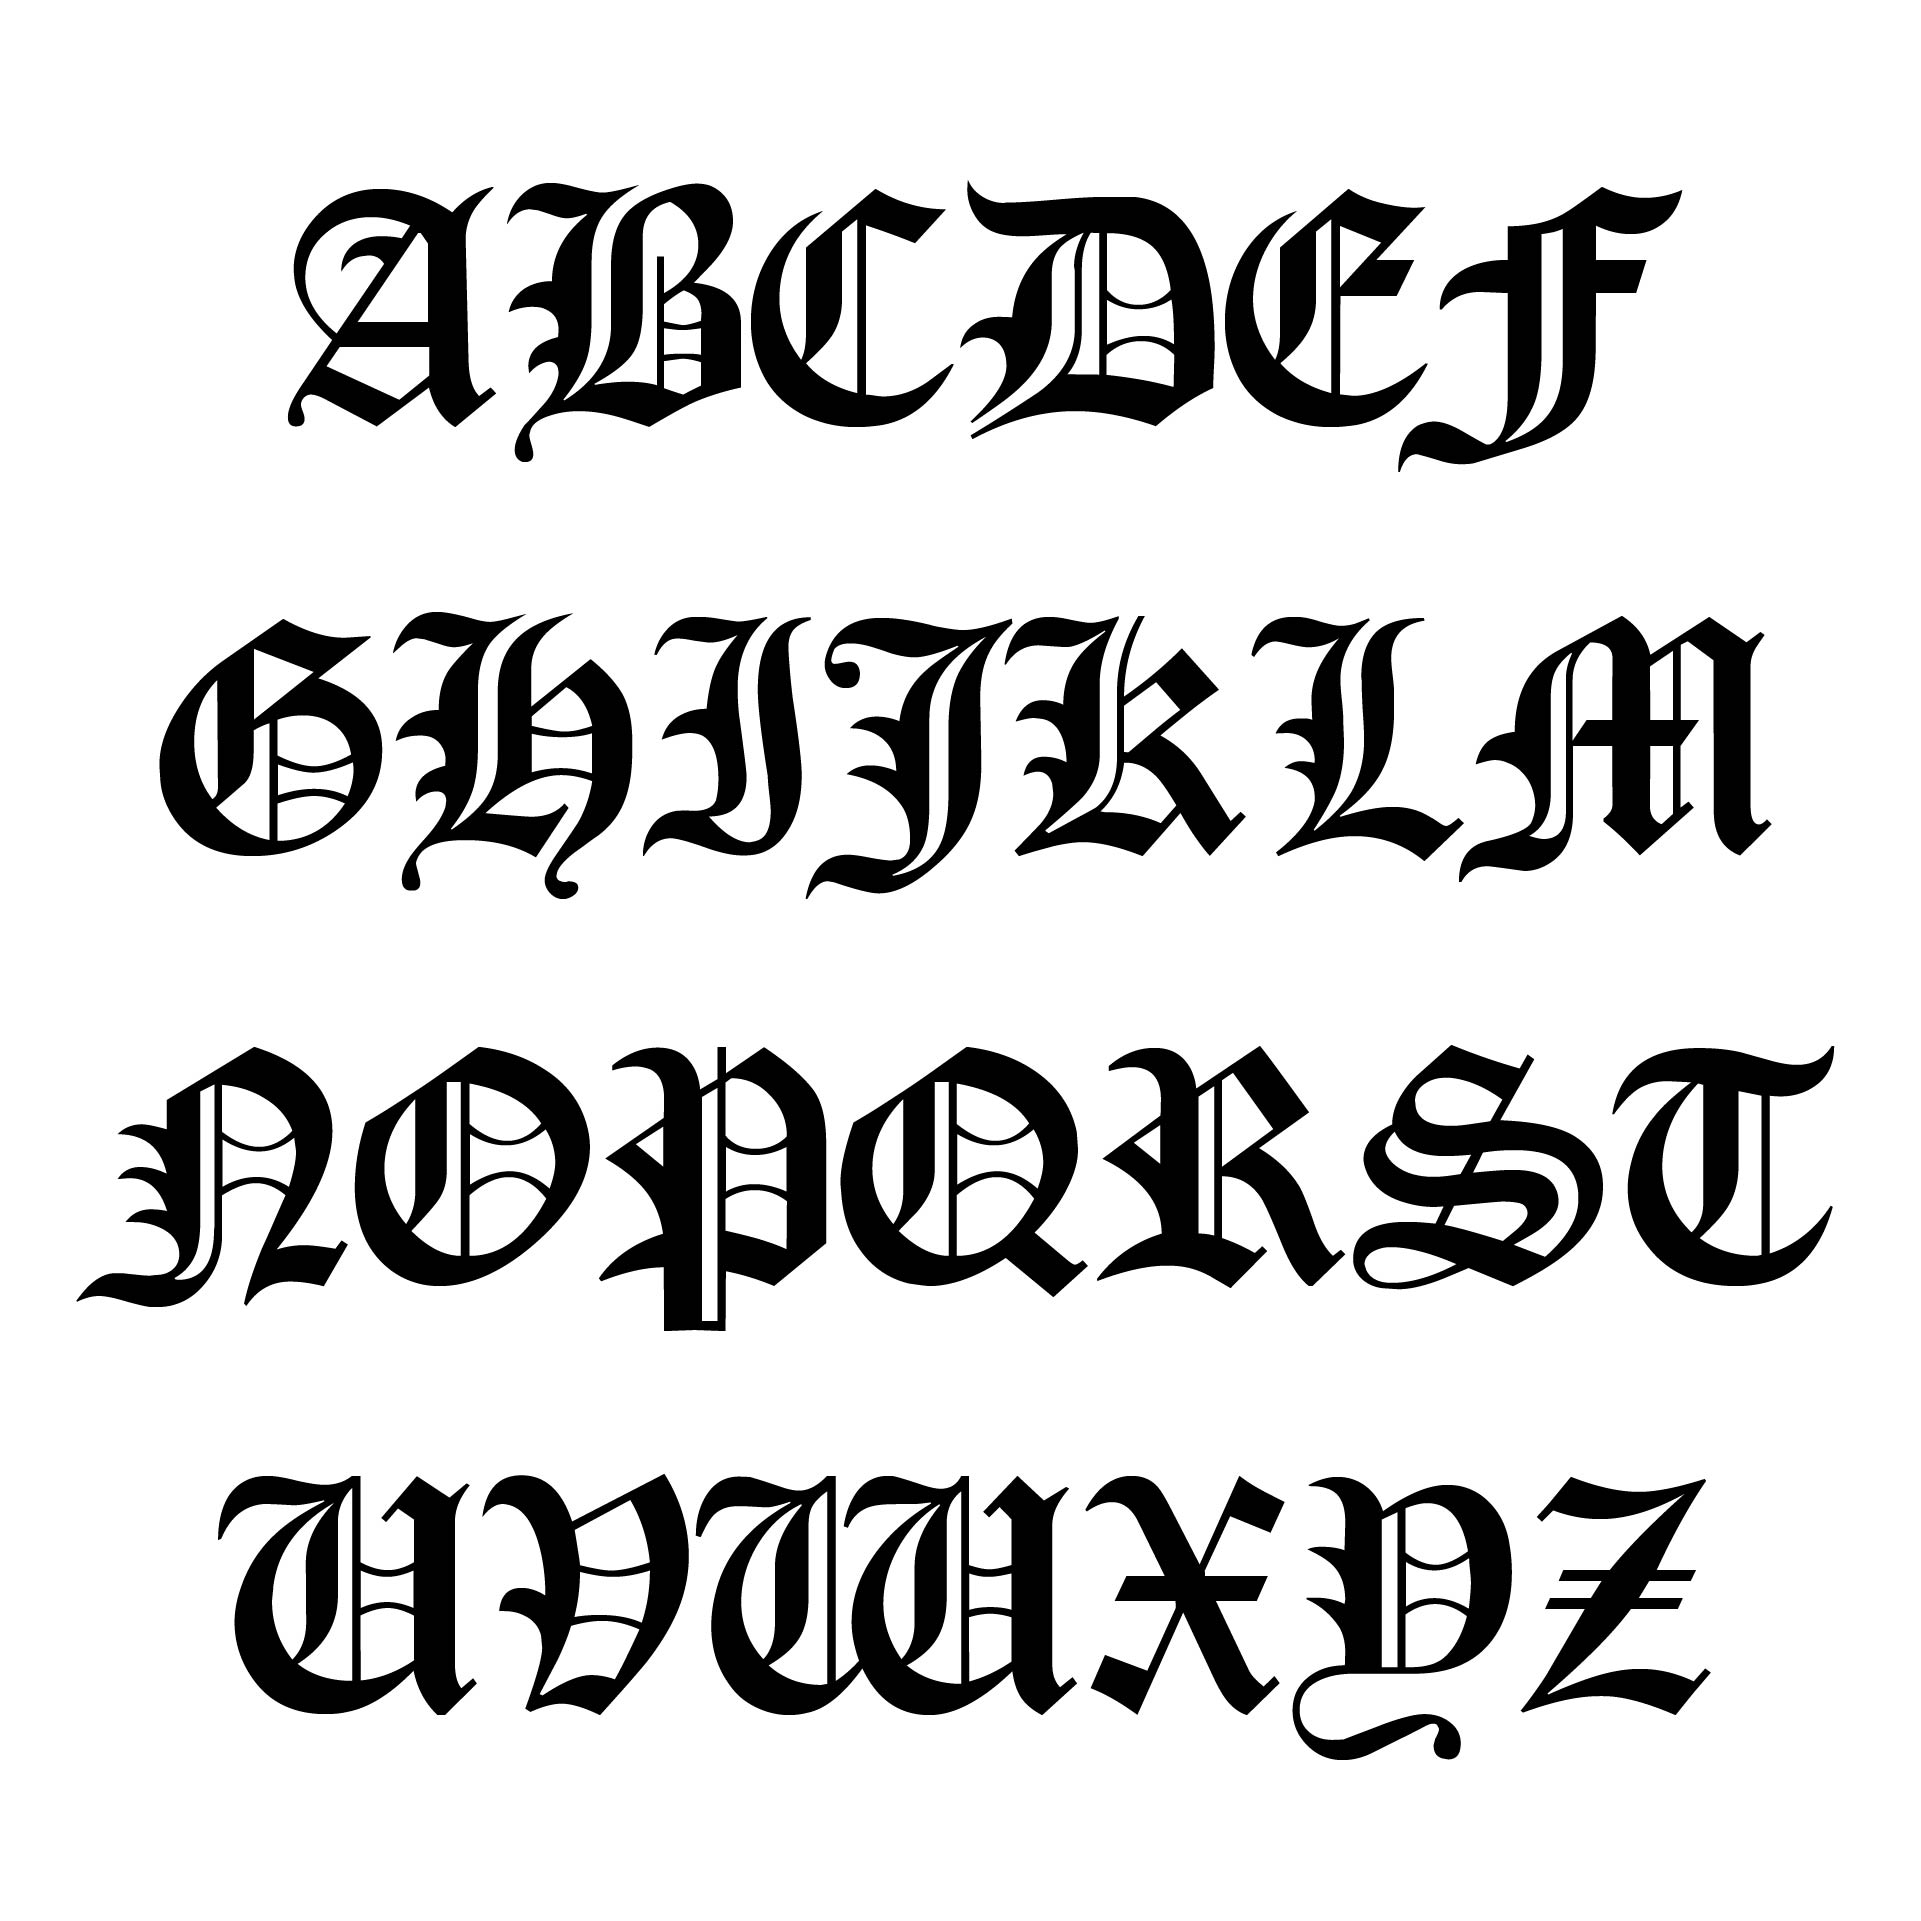 Gothic Old English Letter Stencils